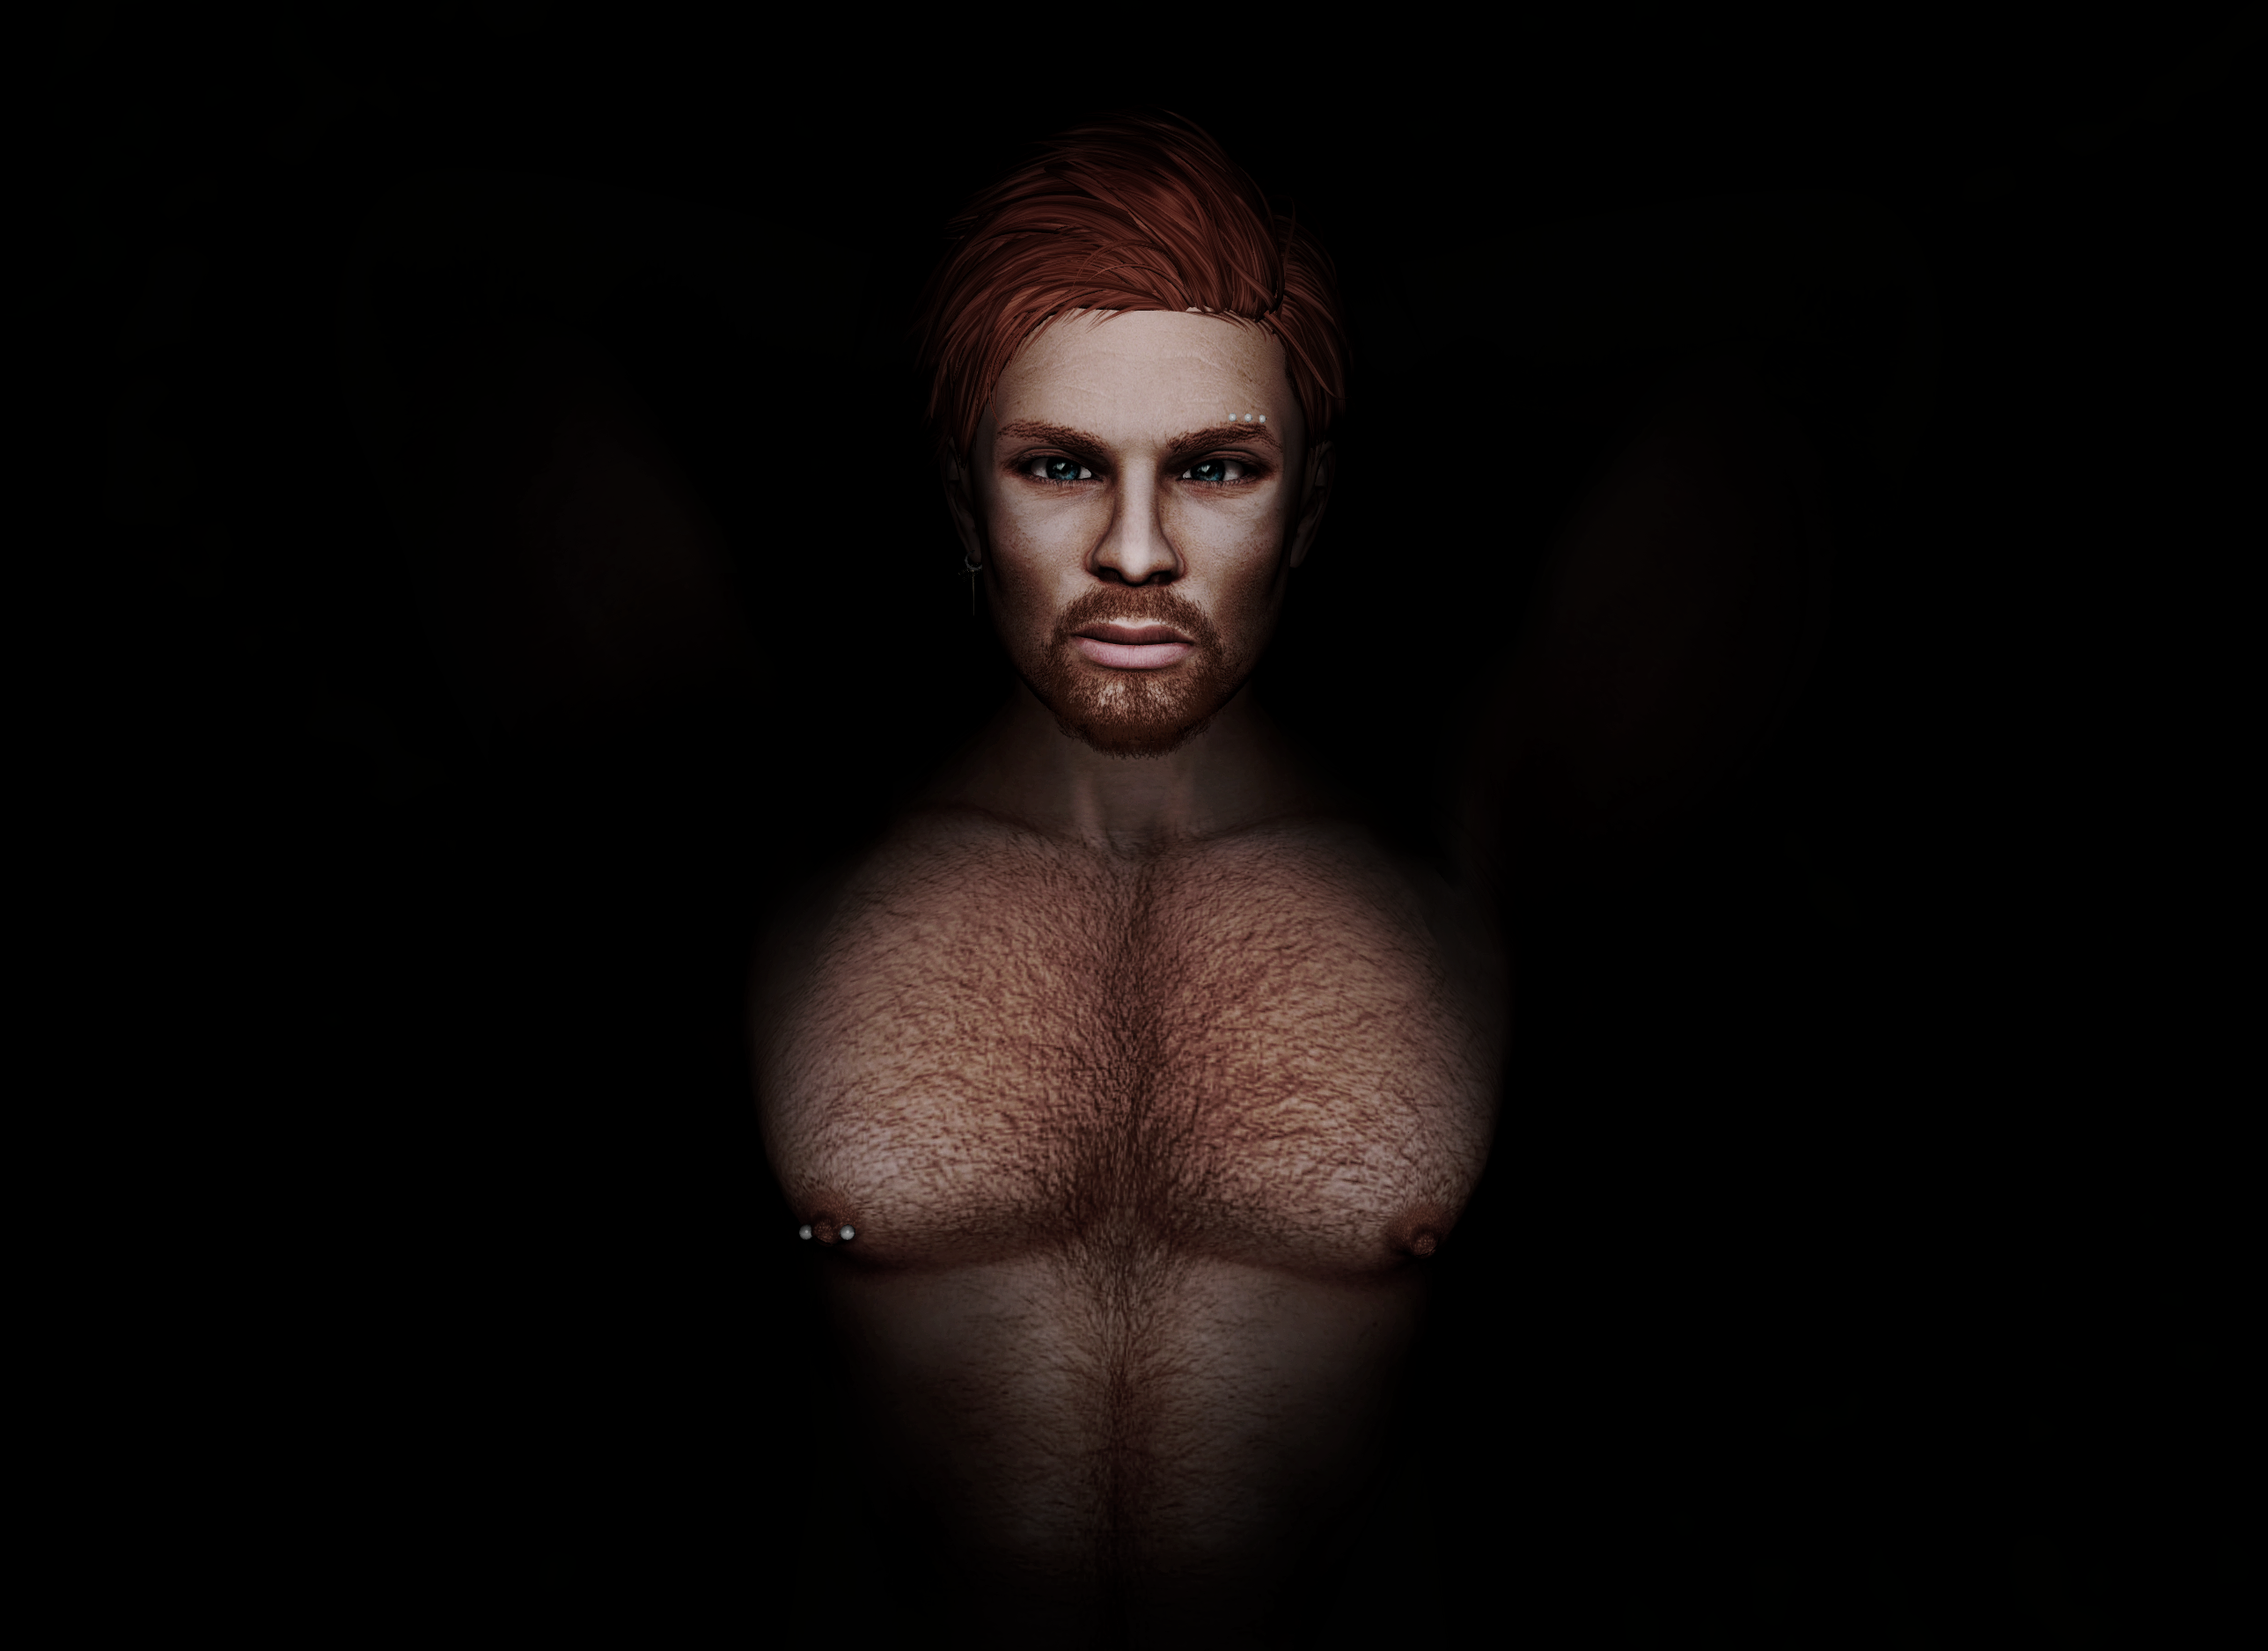 Study for some chiaroscuro effect 3: projected light in SL and some post-production work